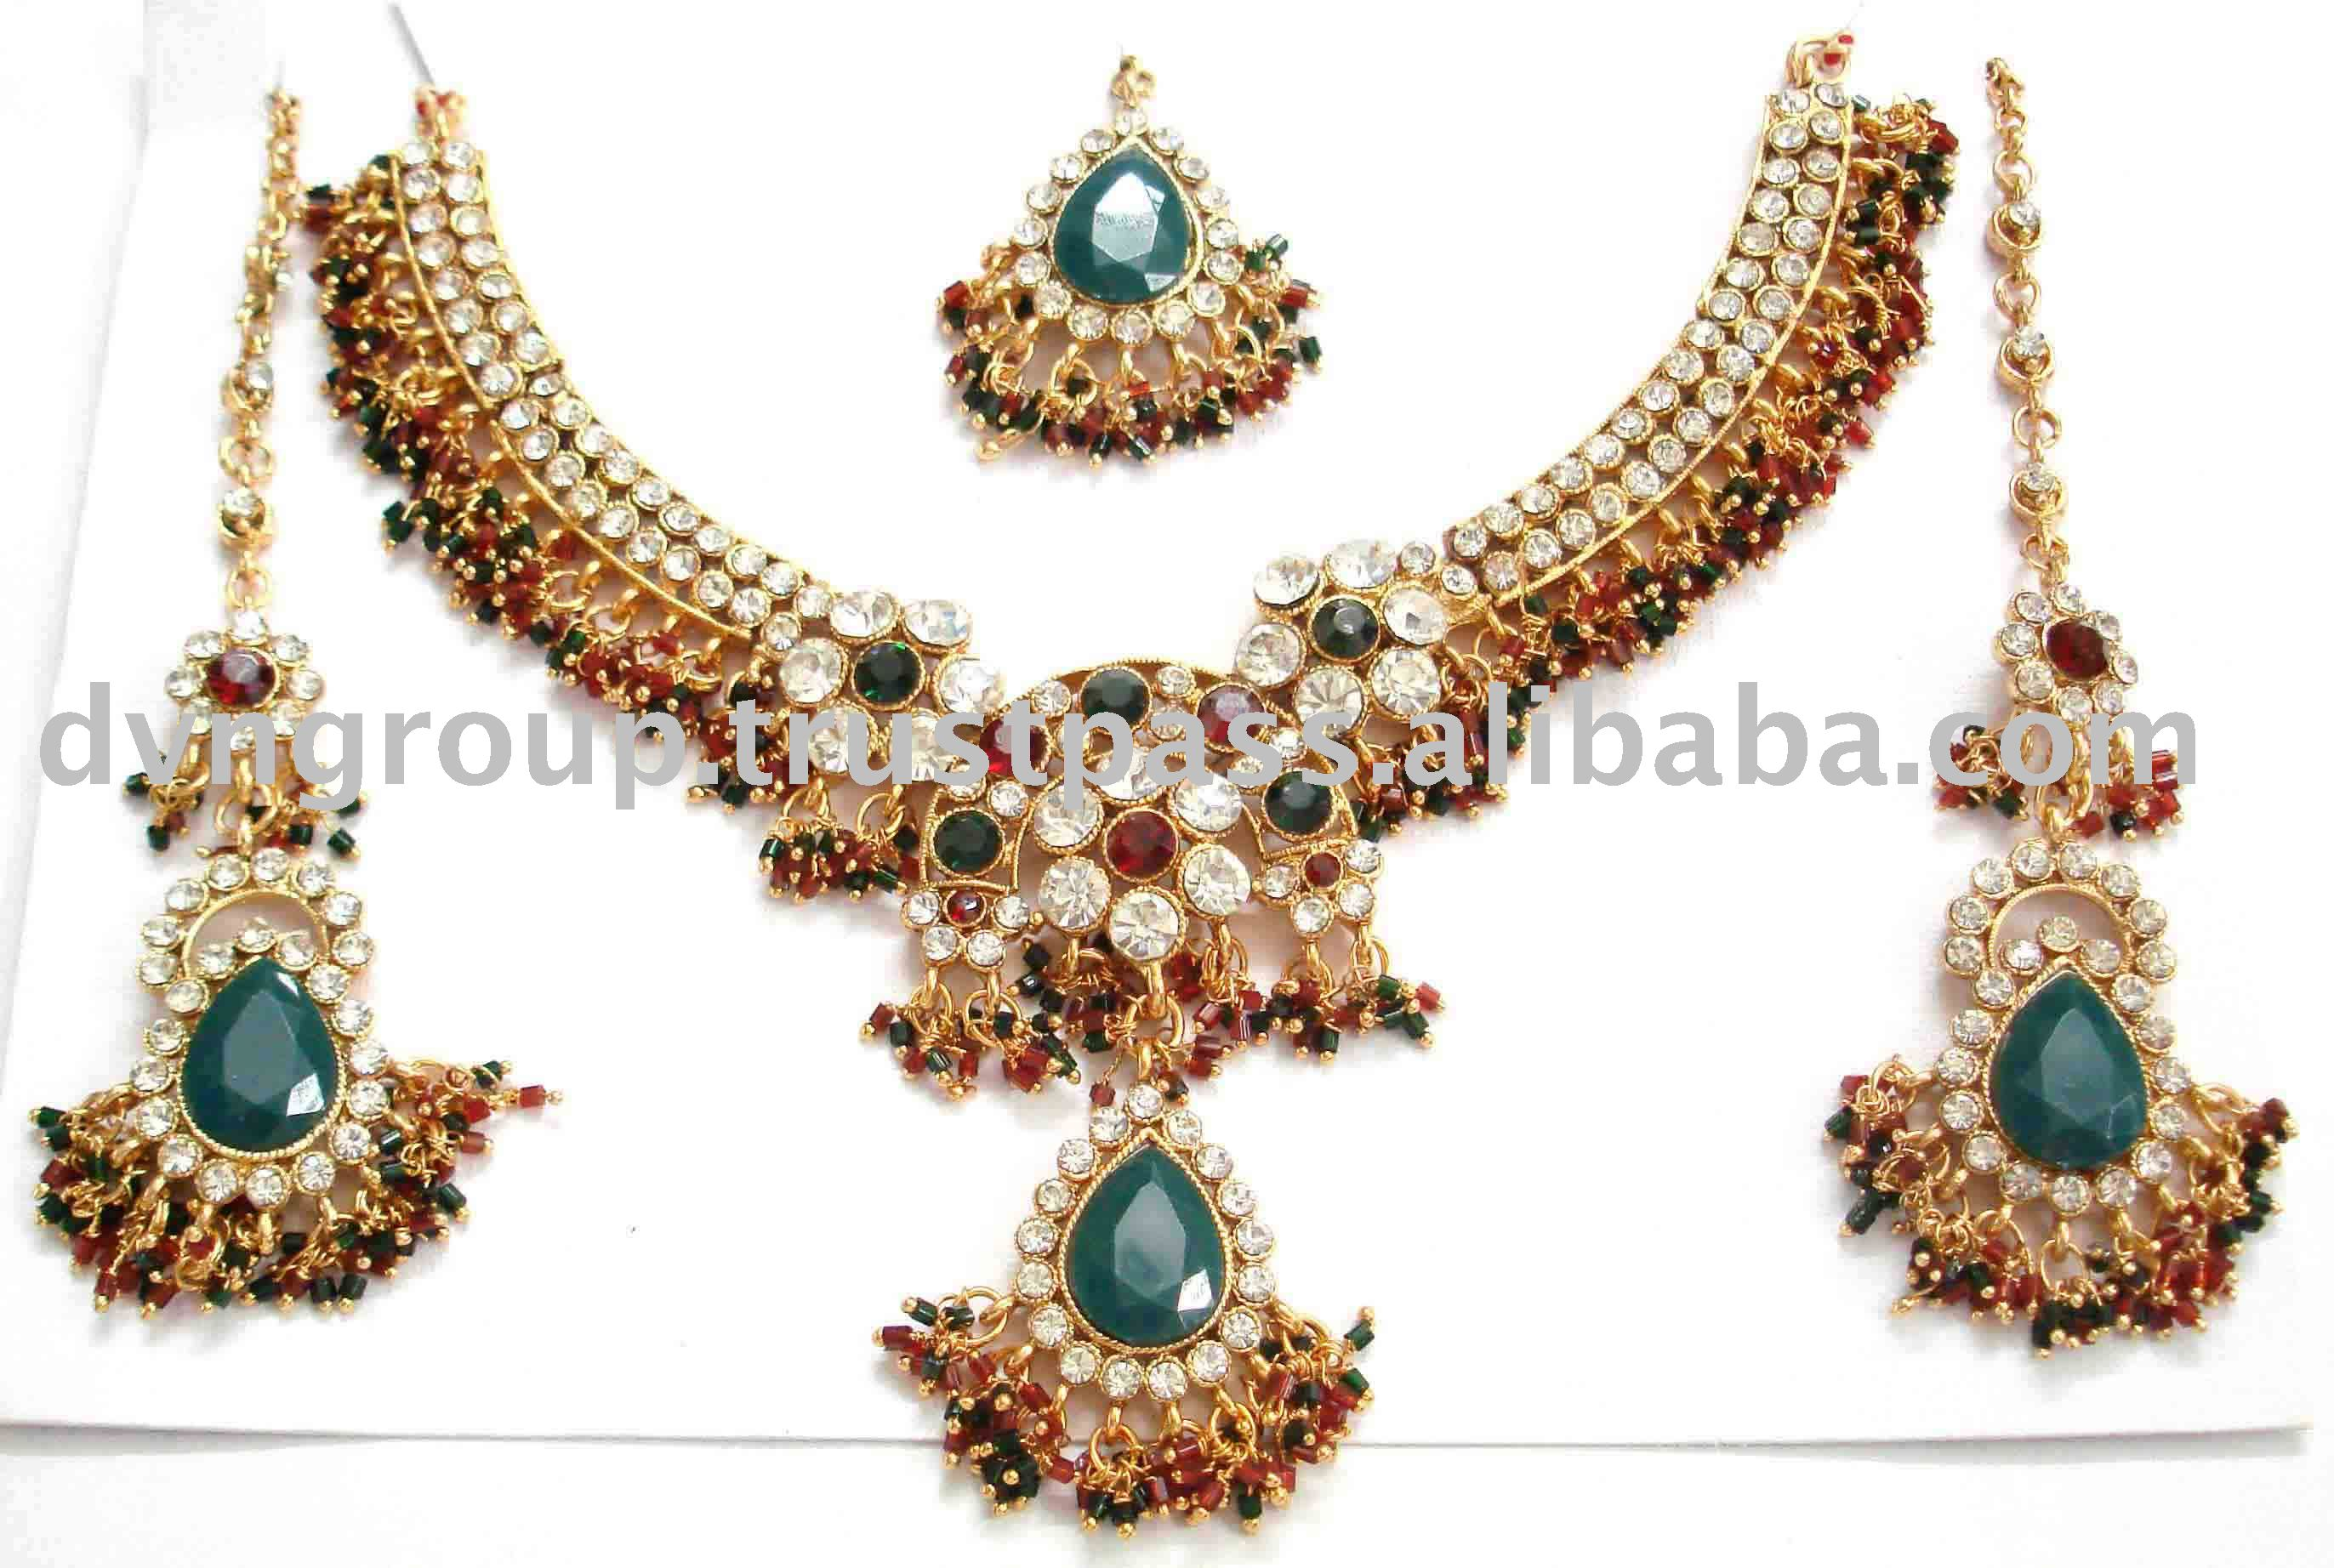 jewellery updates mushkis imitation manufacturer jaipur beaded ethnic artificial jewelry in costume fashion indian india